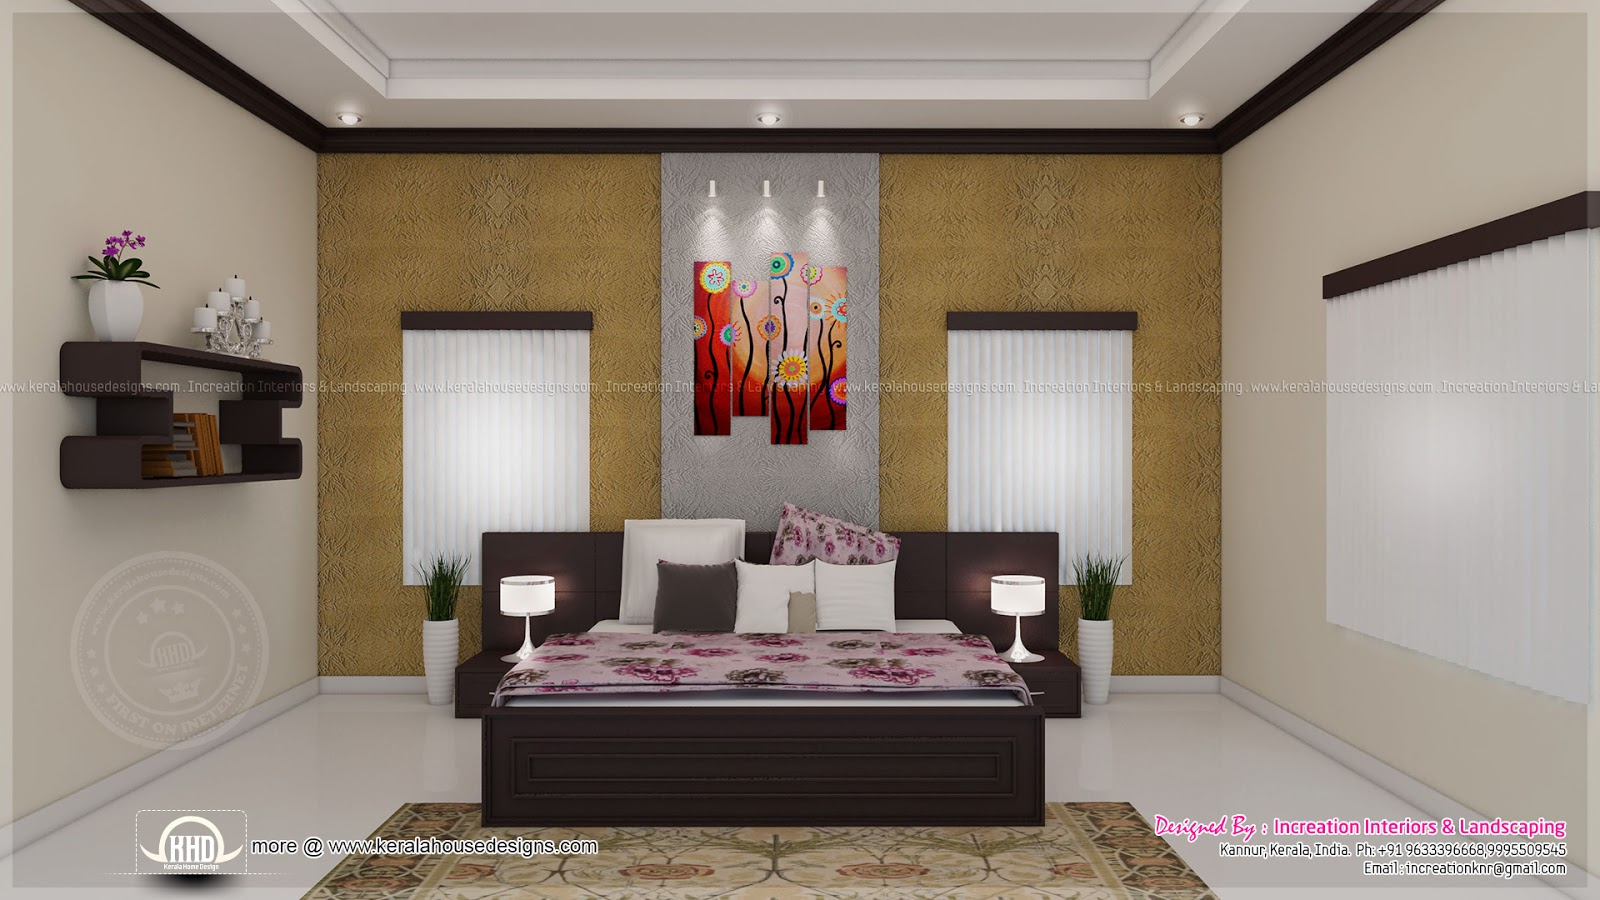 House interior ideas in 3d rendering kerala home design for House plans interior photos